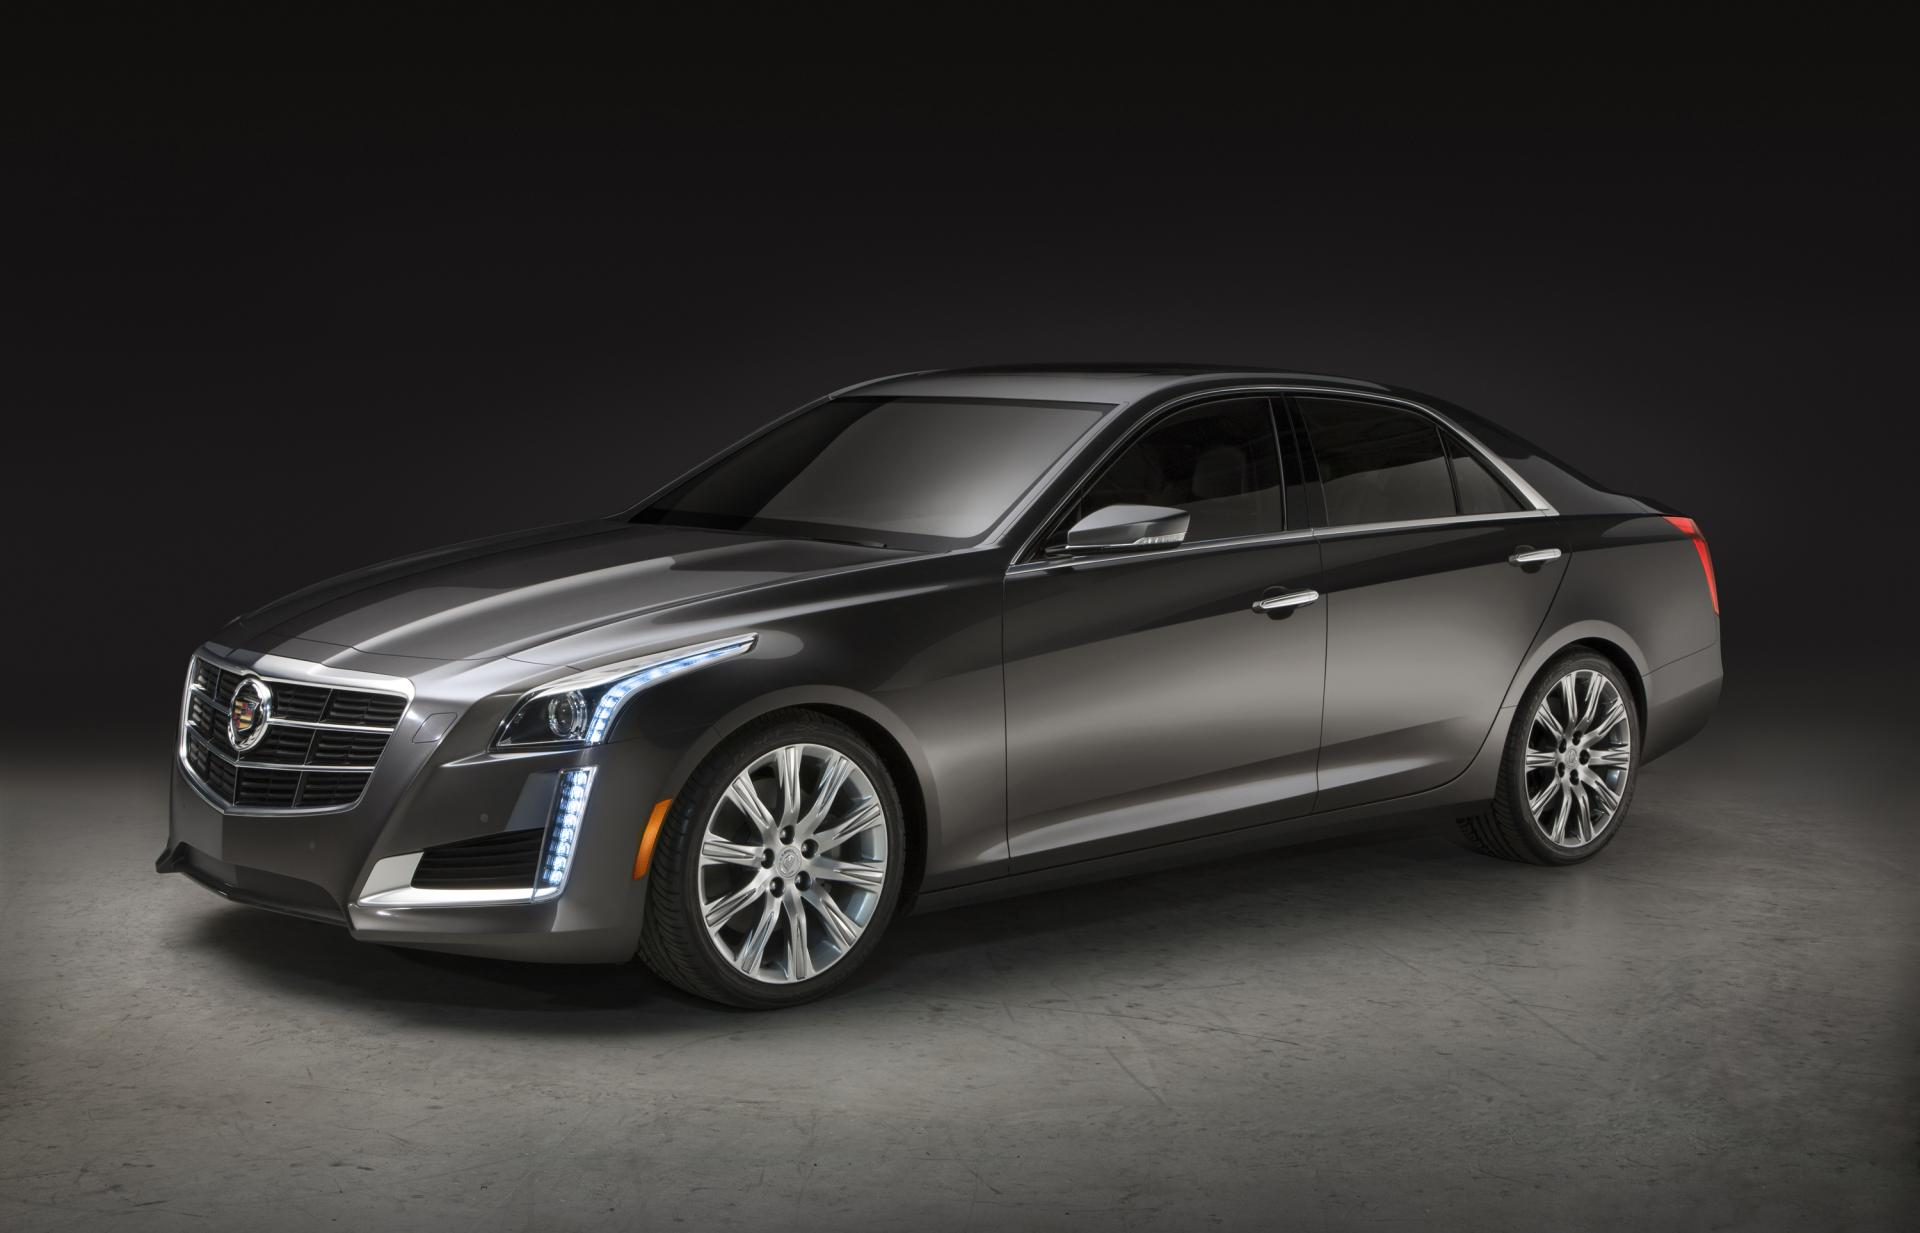 2014 Cadillac CTS News and Information | conceptcarz.com